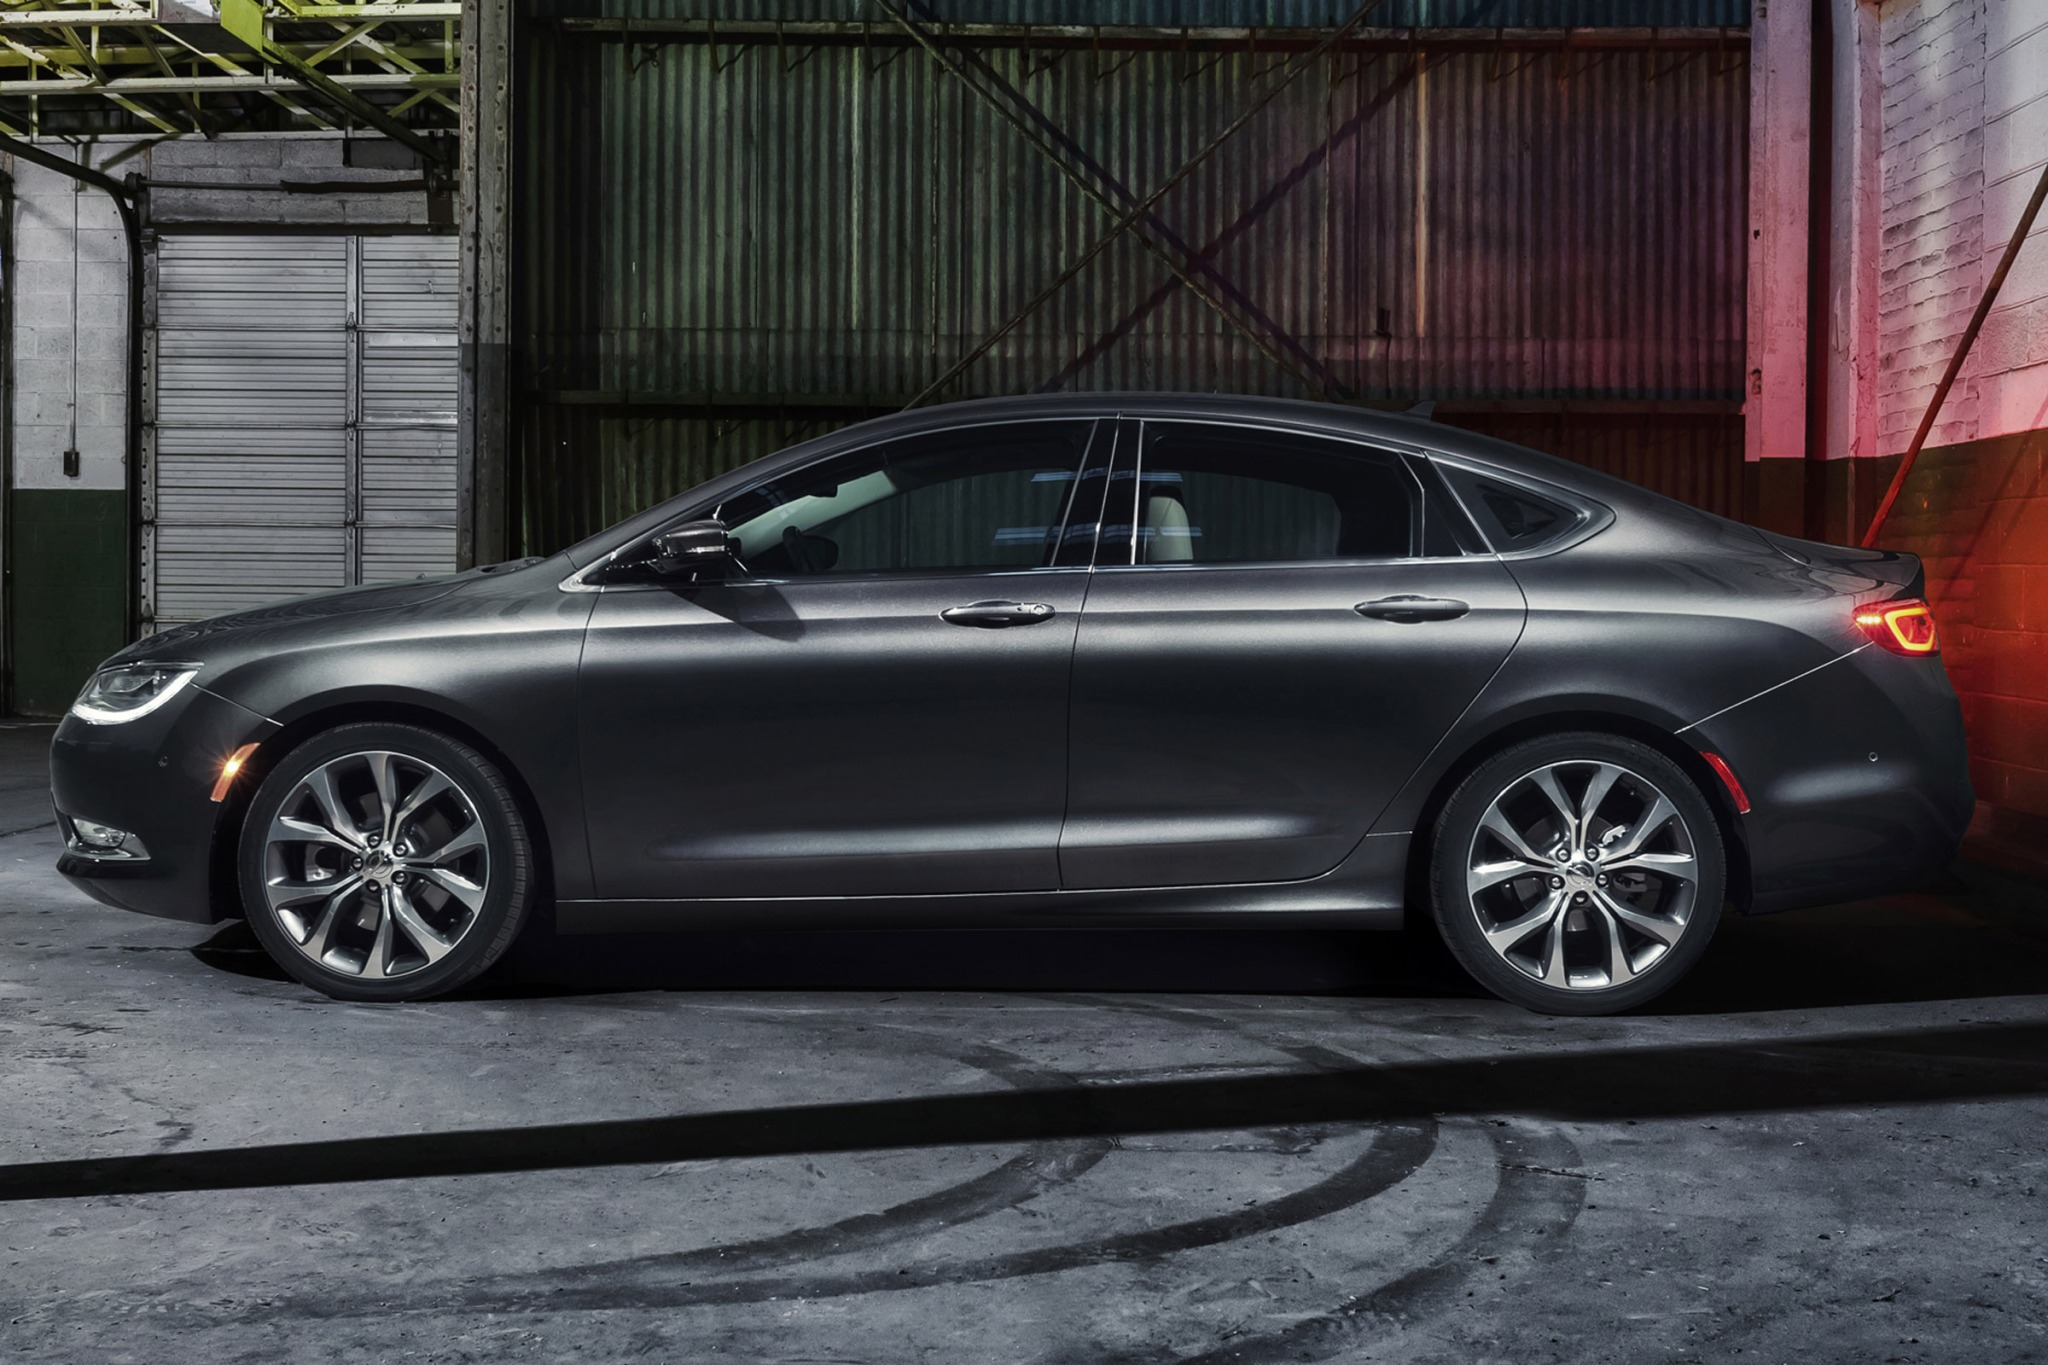 2015 Chrysler 200 C Sedan exterior #4